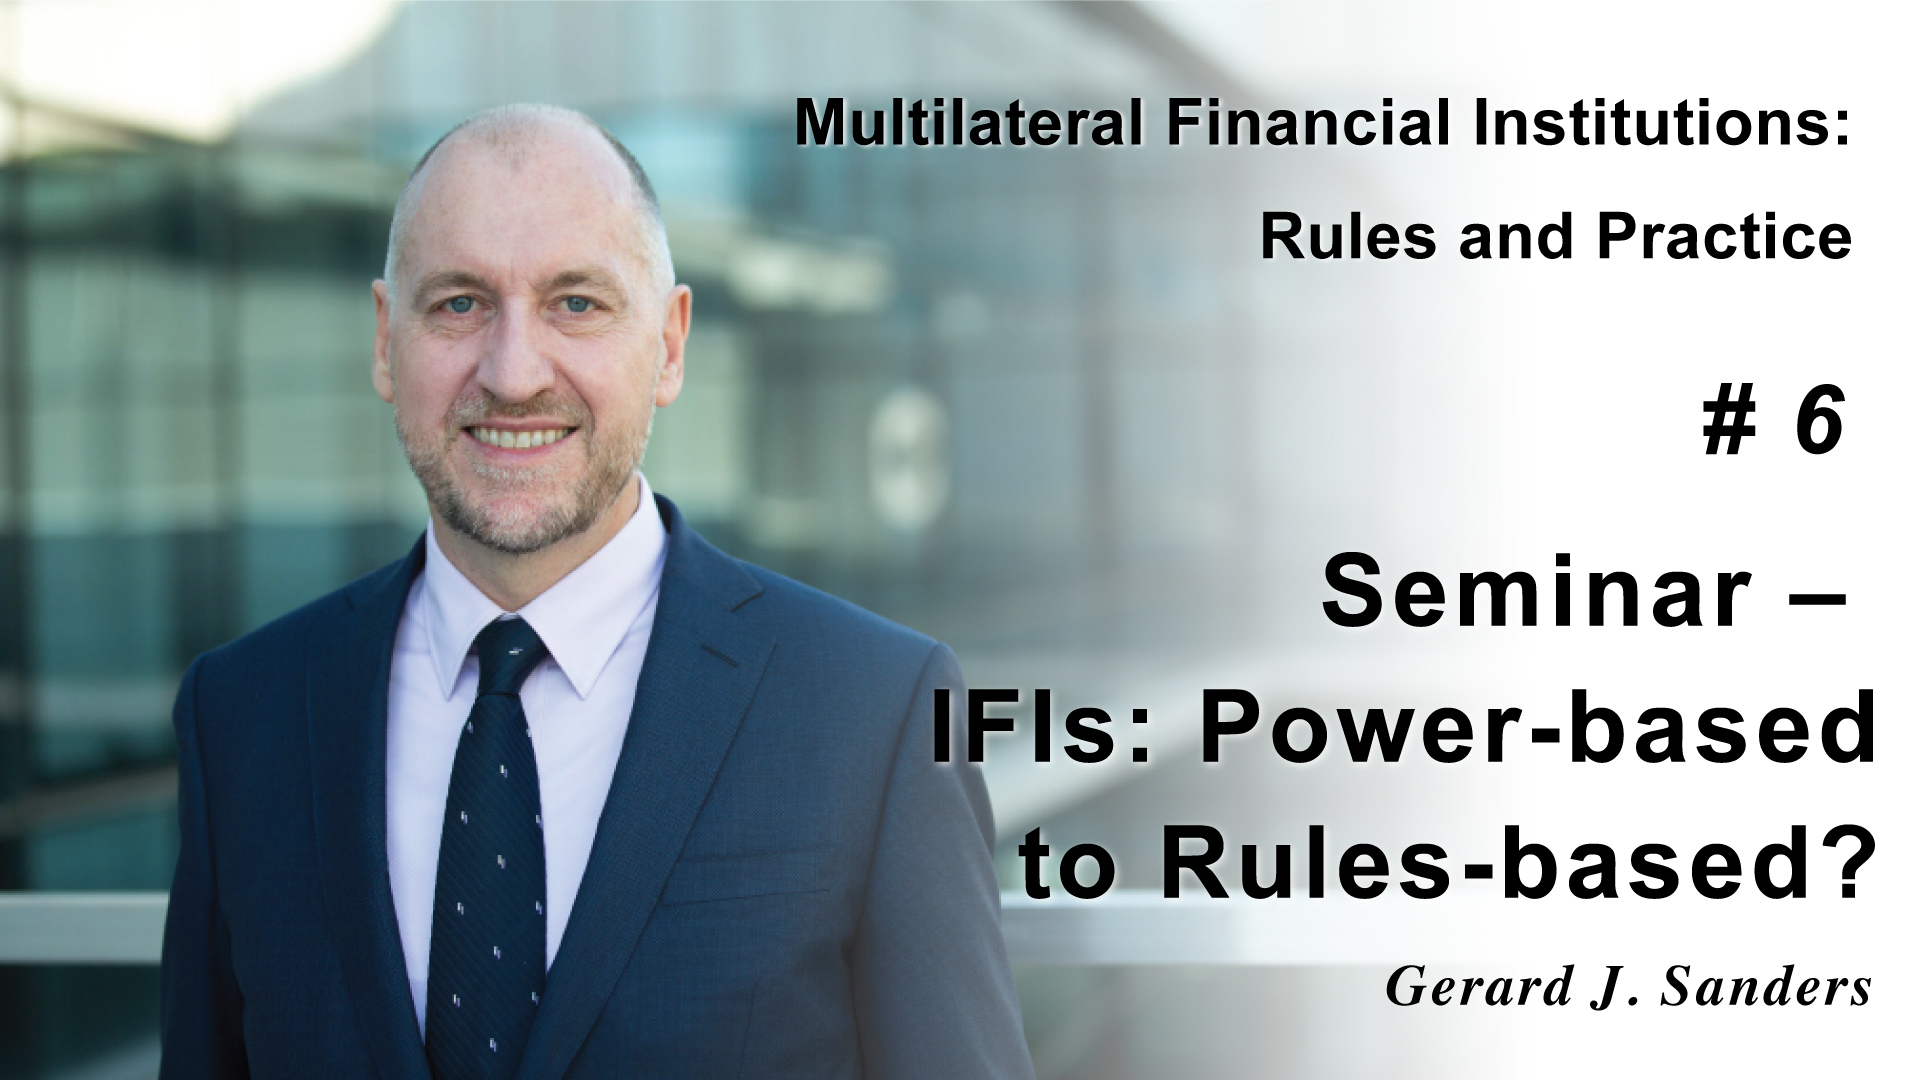 Seminar - IFIs: Power-based to Rules-based?